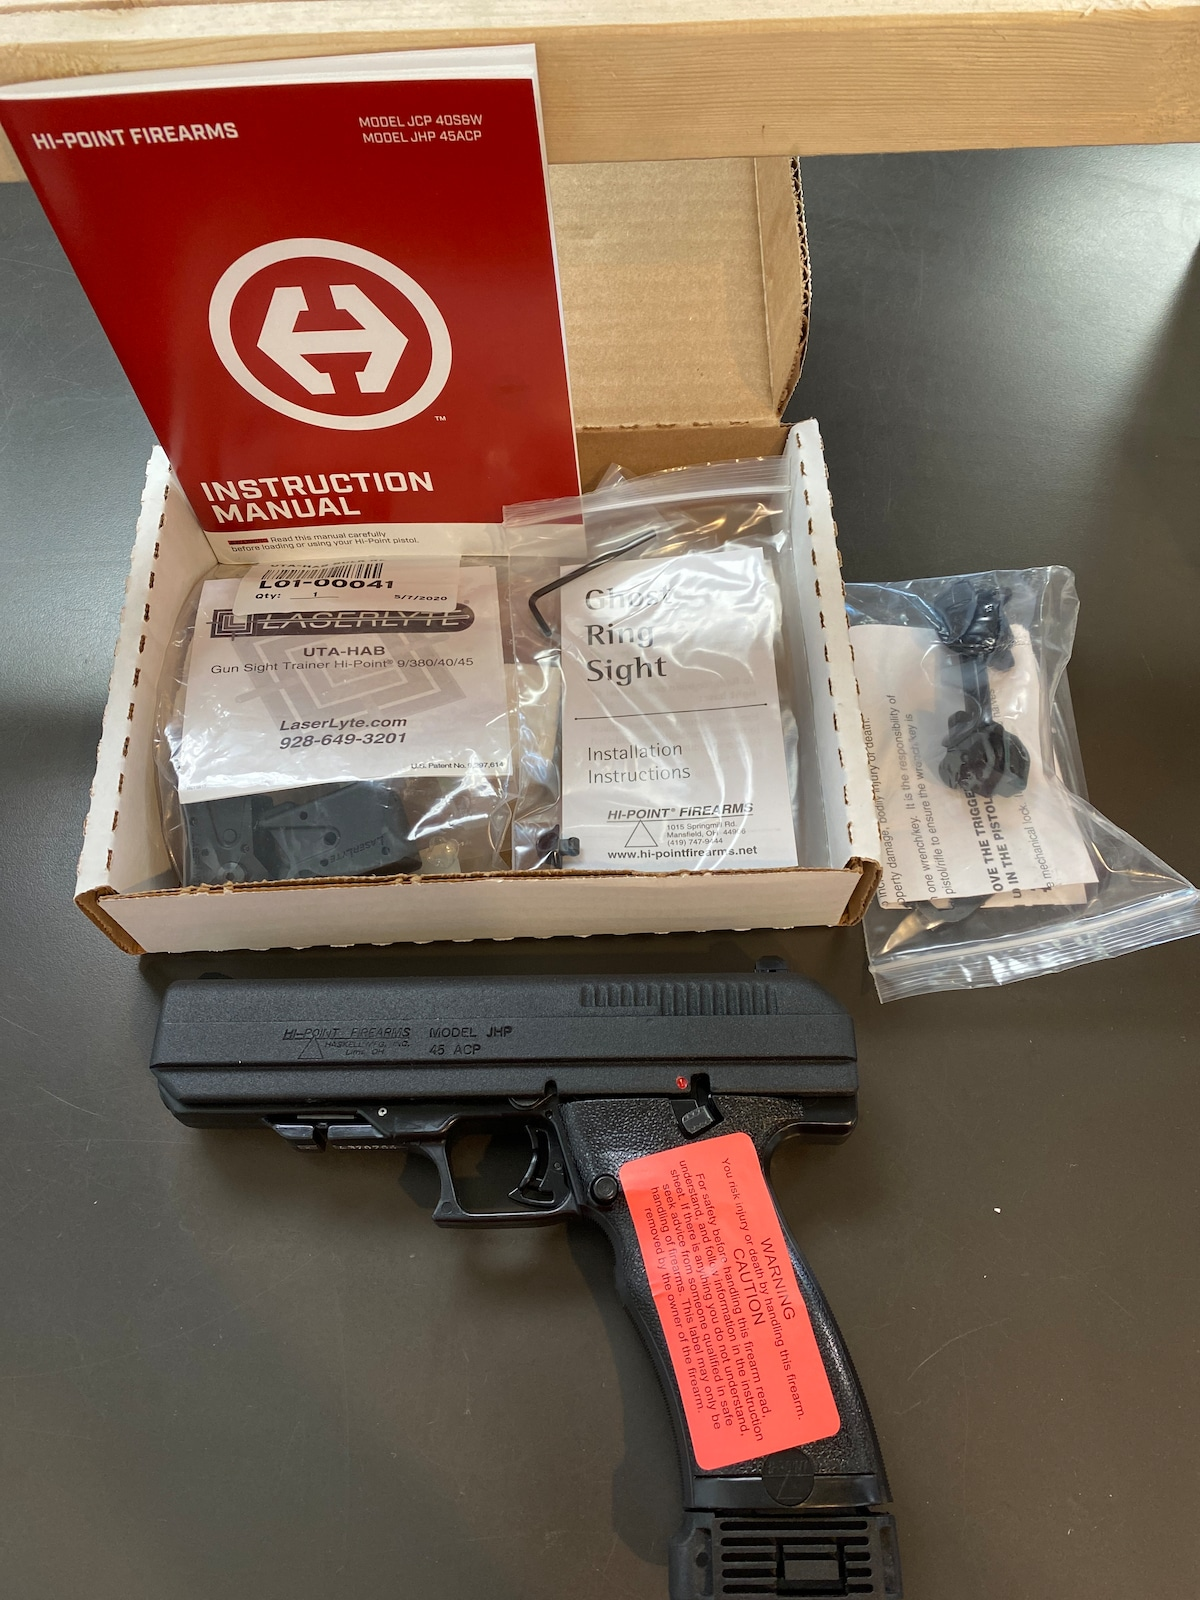 HI-POINT JHP with Laserlyte Laser